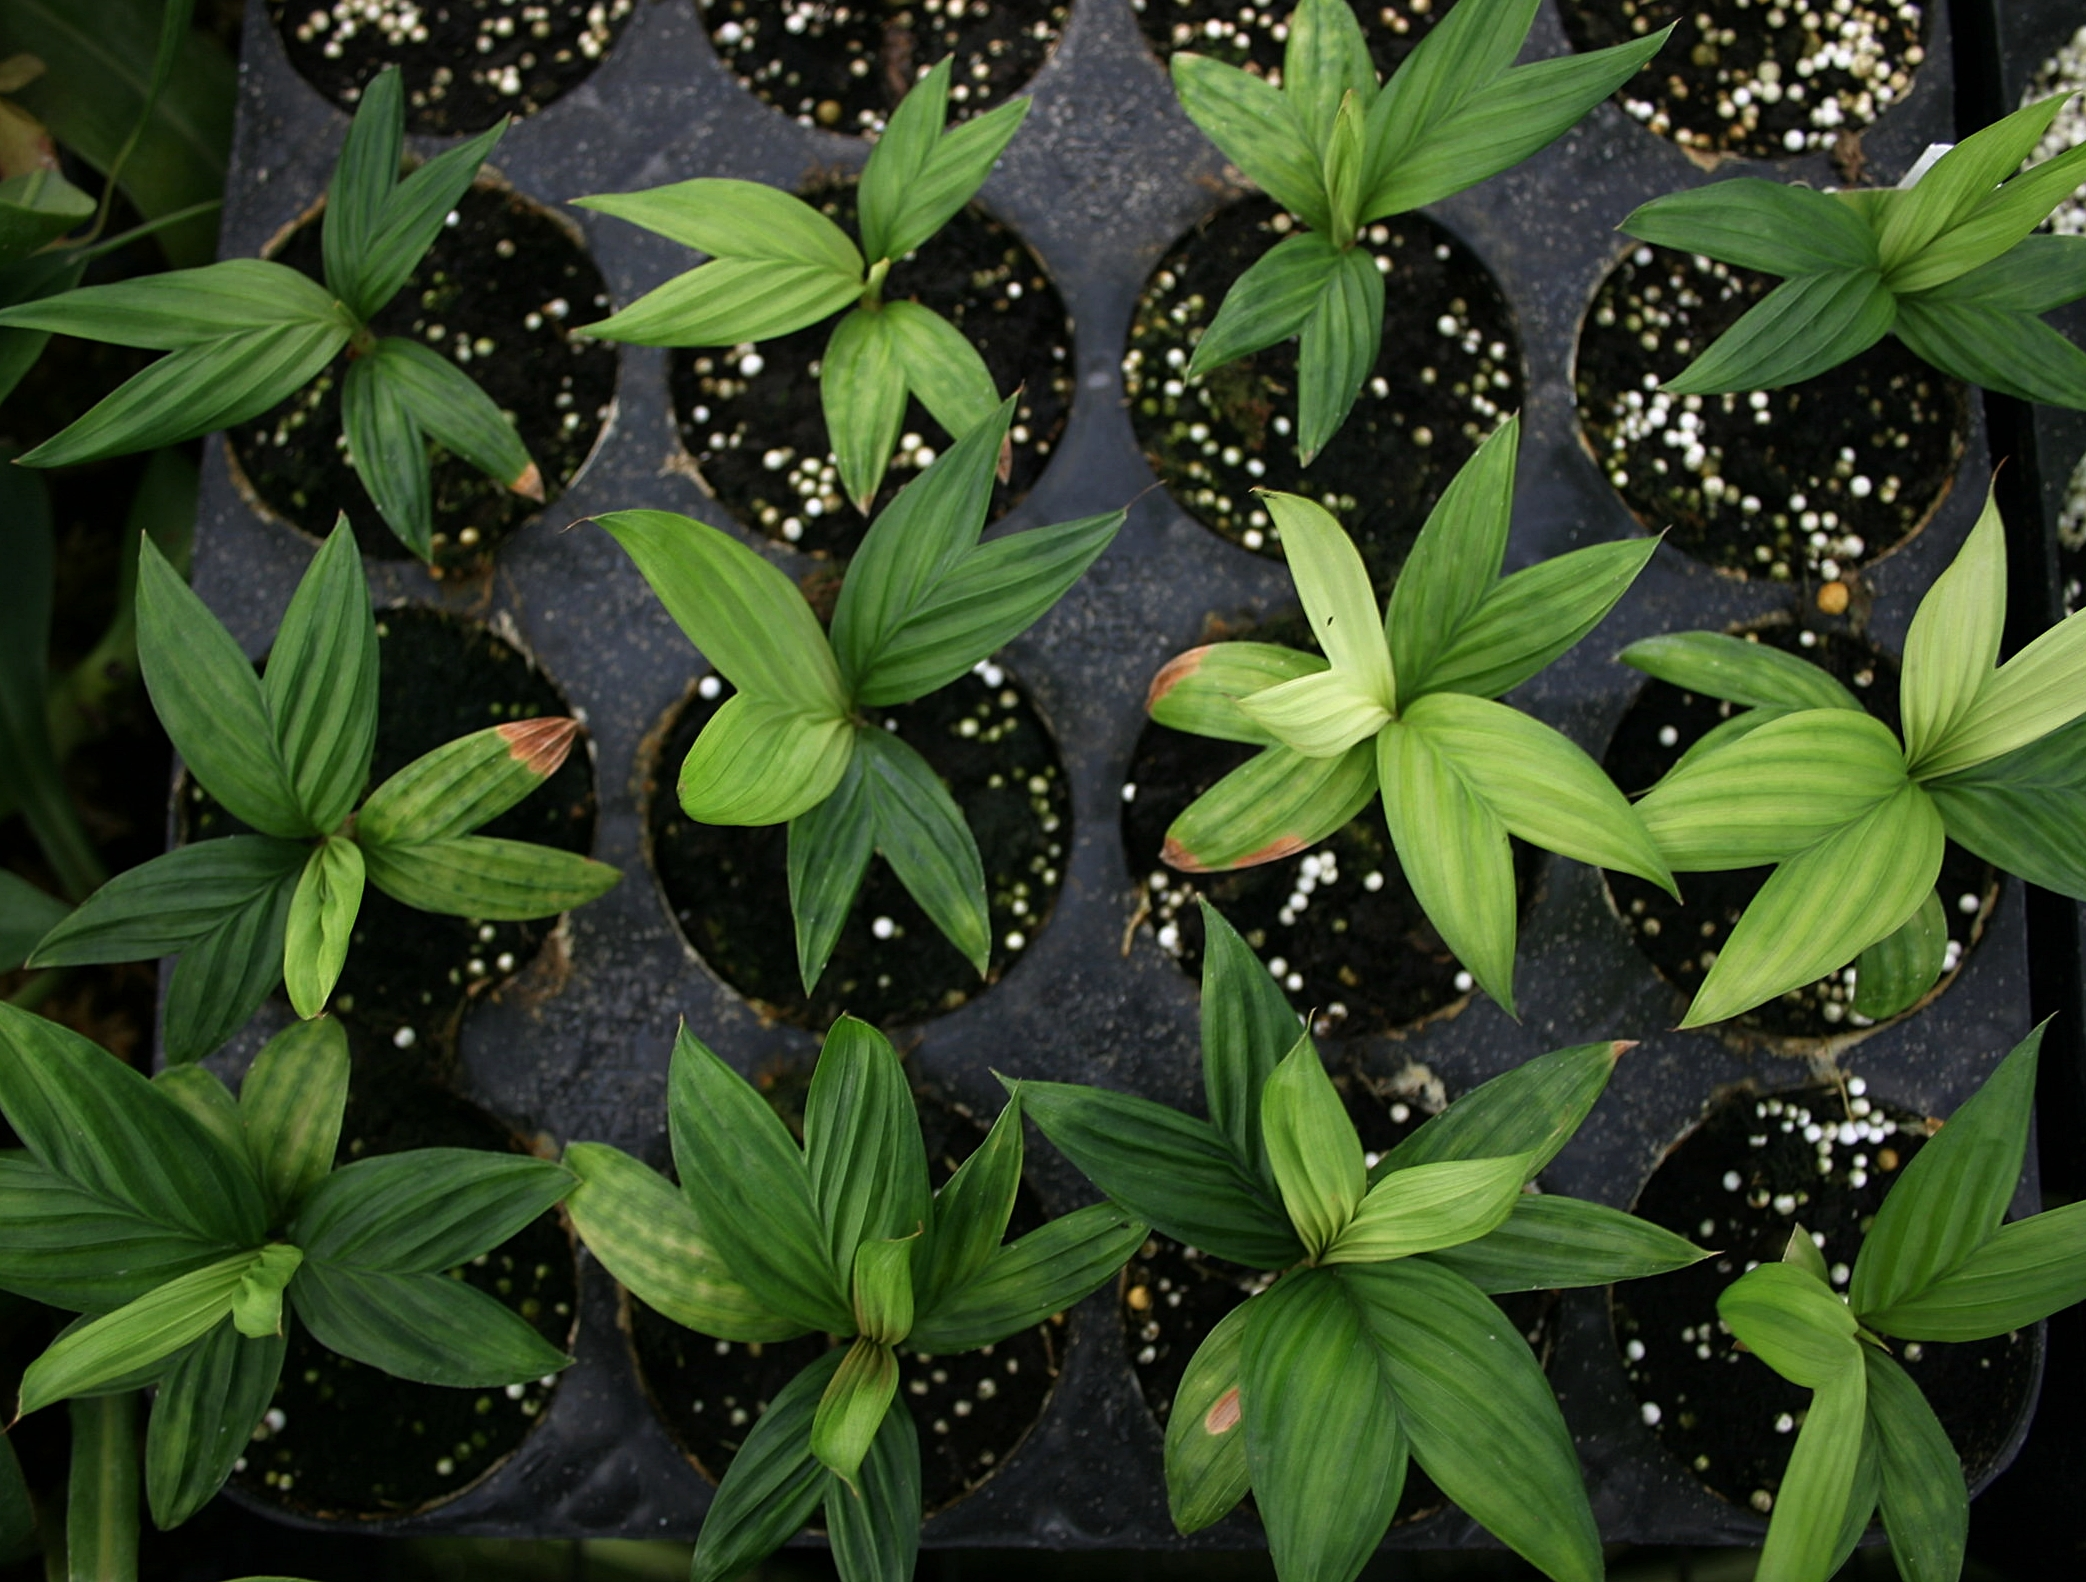 Eighteen month-old F1  Geonoma epetiolata  seedlings growing in soil-less media, Guatemala.